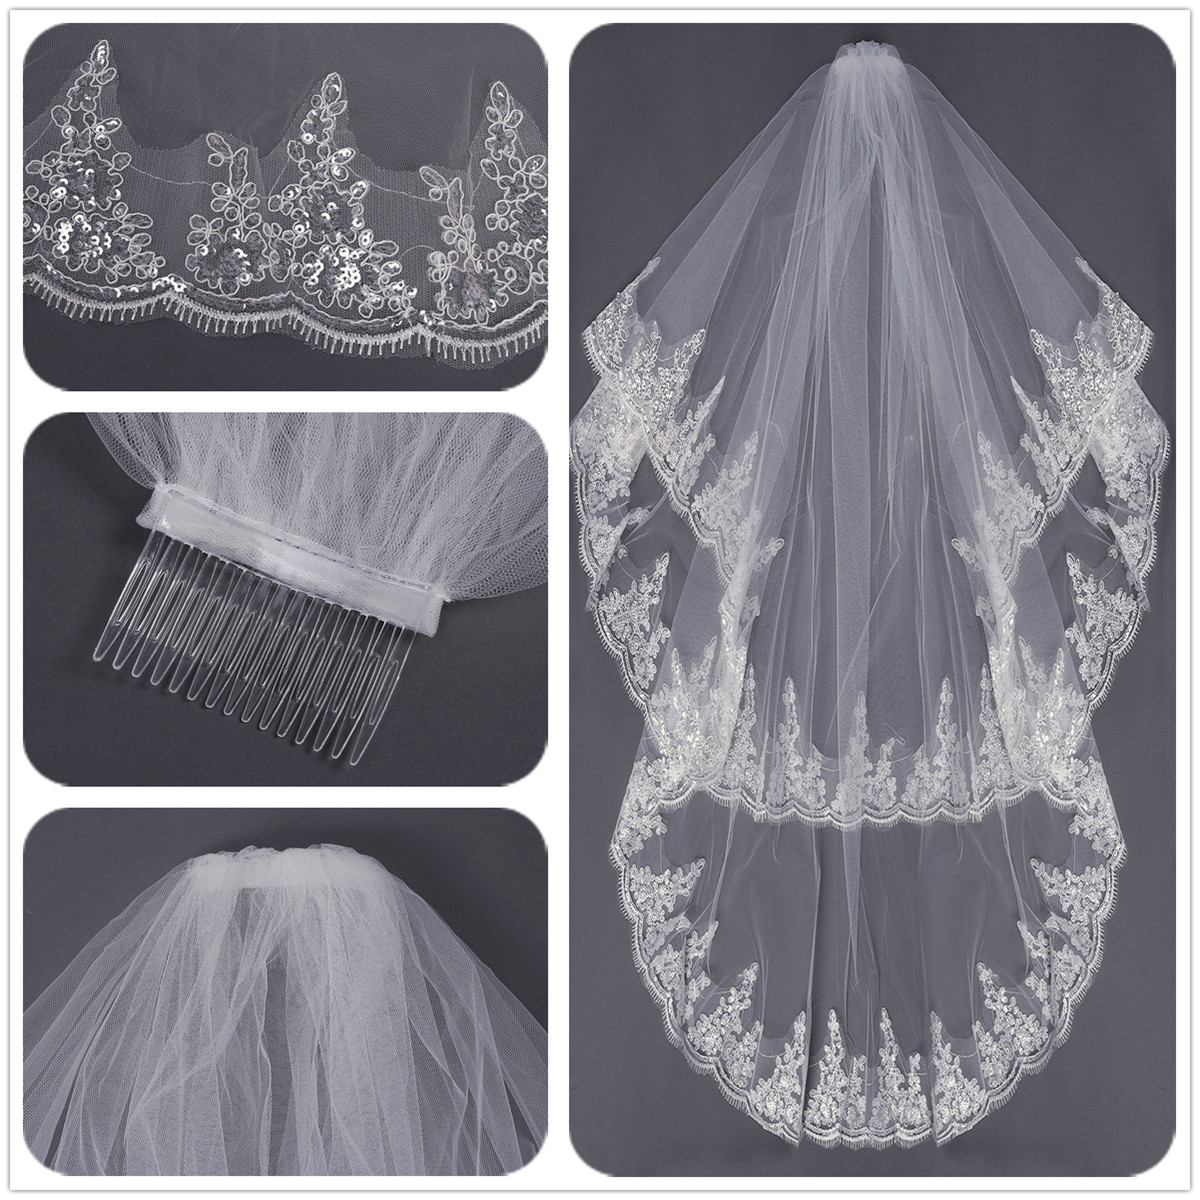 2 Layers Embroidery Lace Pearl Beaded Edge Bridal Wedding Elbow Veil With Comb